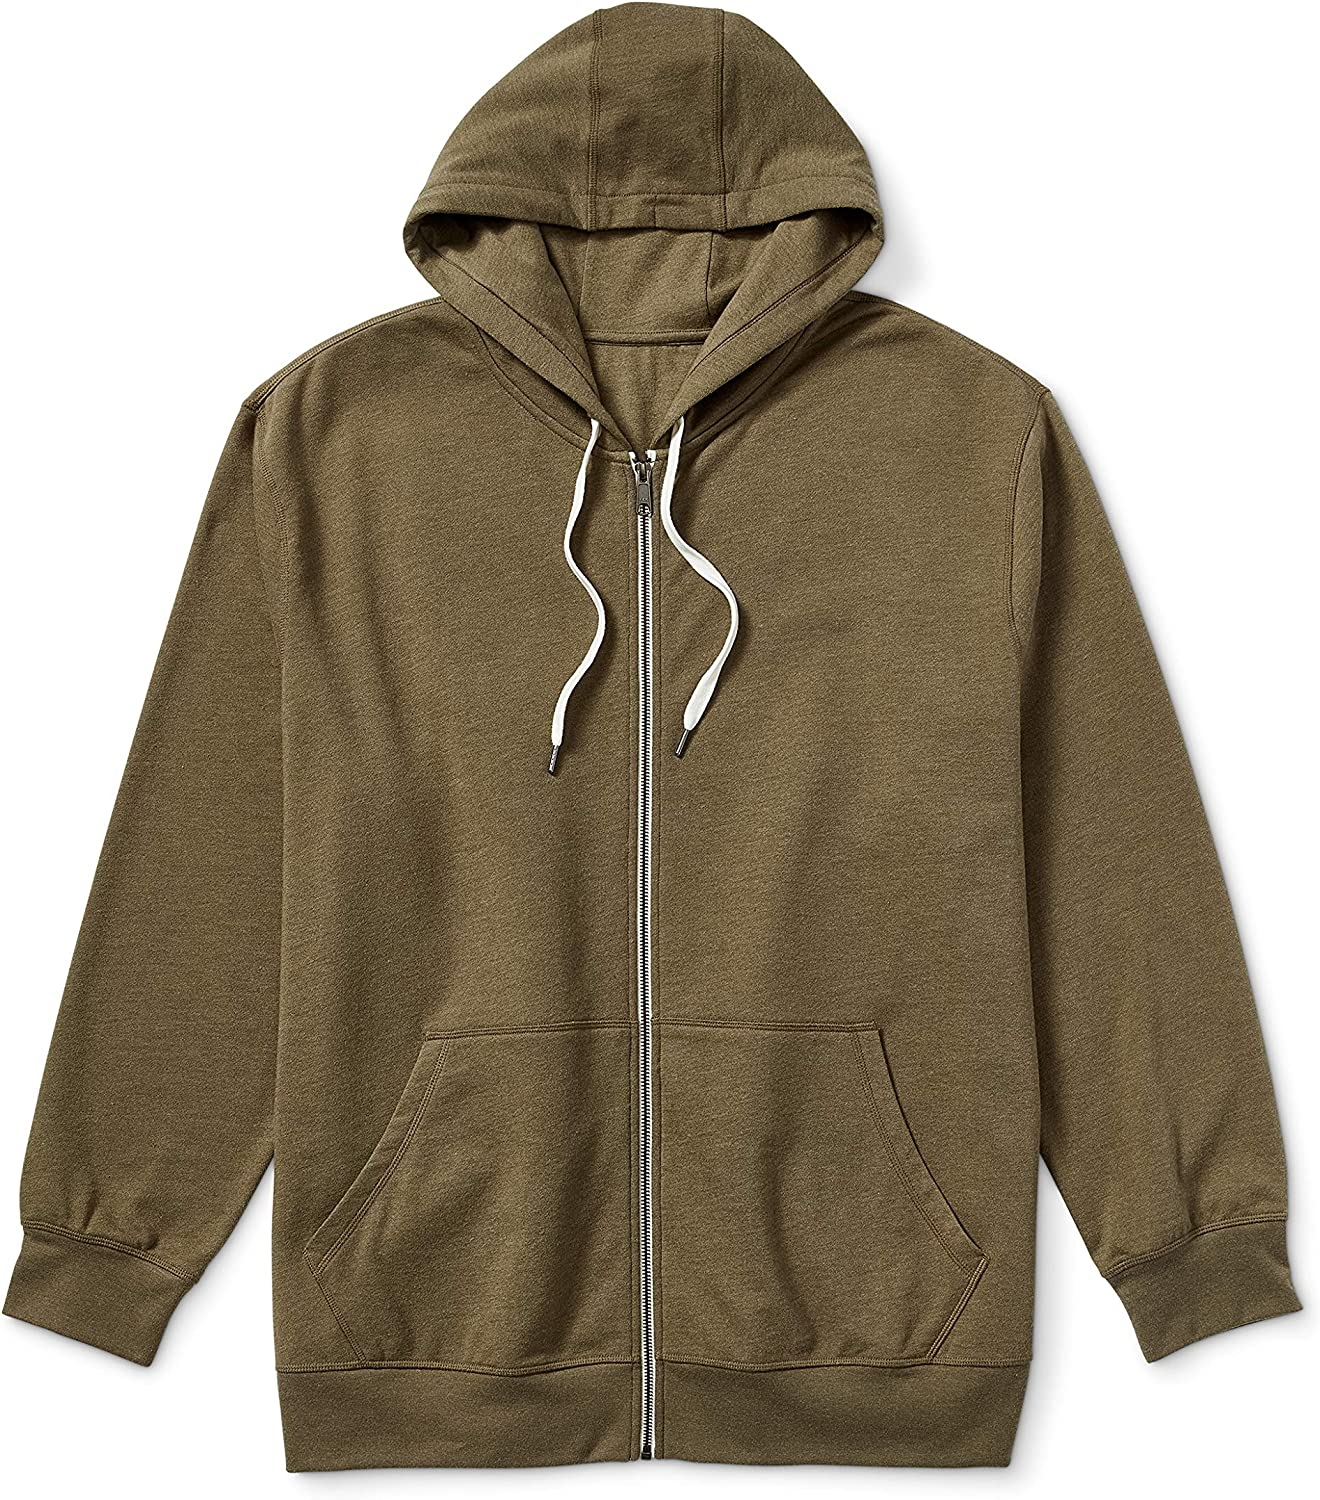 Arlington Mall Amazon Essentials Men's Courier shipping free Big Tall French Full-Zip Sweatsh Terry